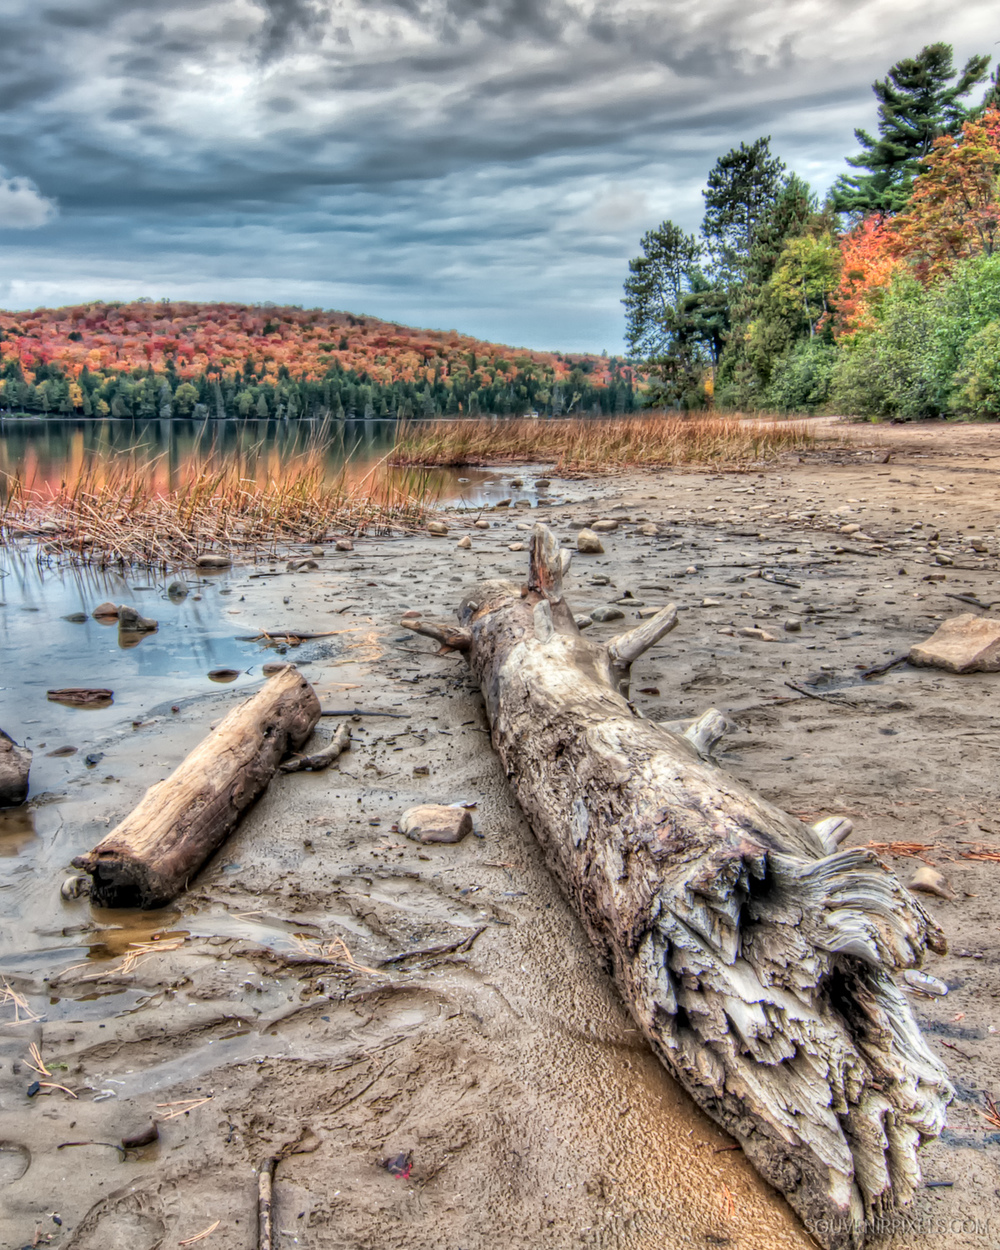 P0094-Lakeside Log-XLarge.jpg